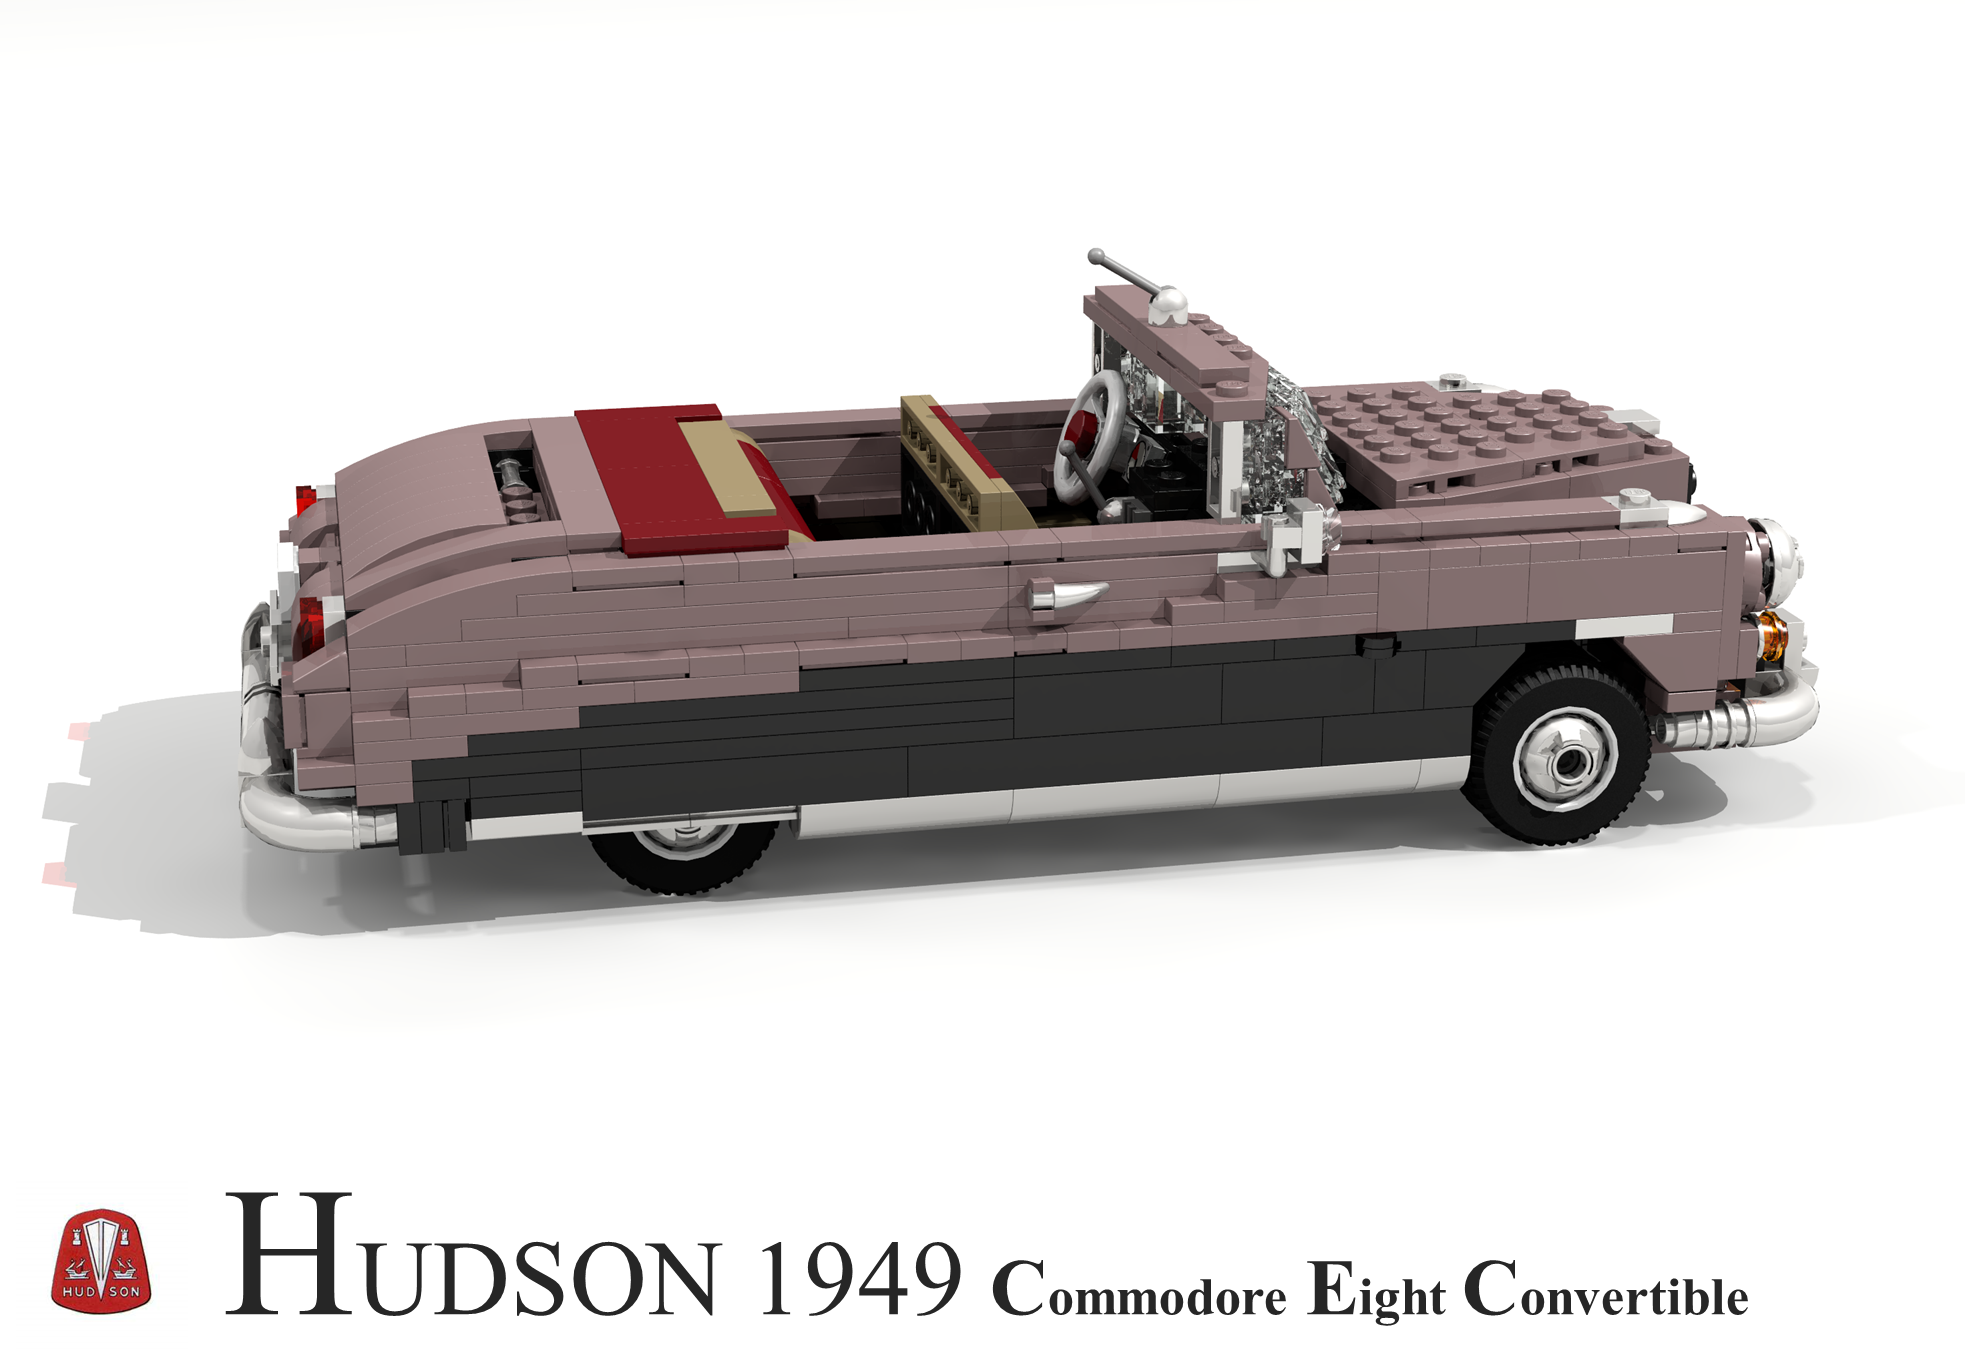 hudson_1949_commodore_eight_convertible_09.png